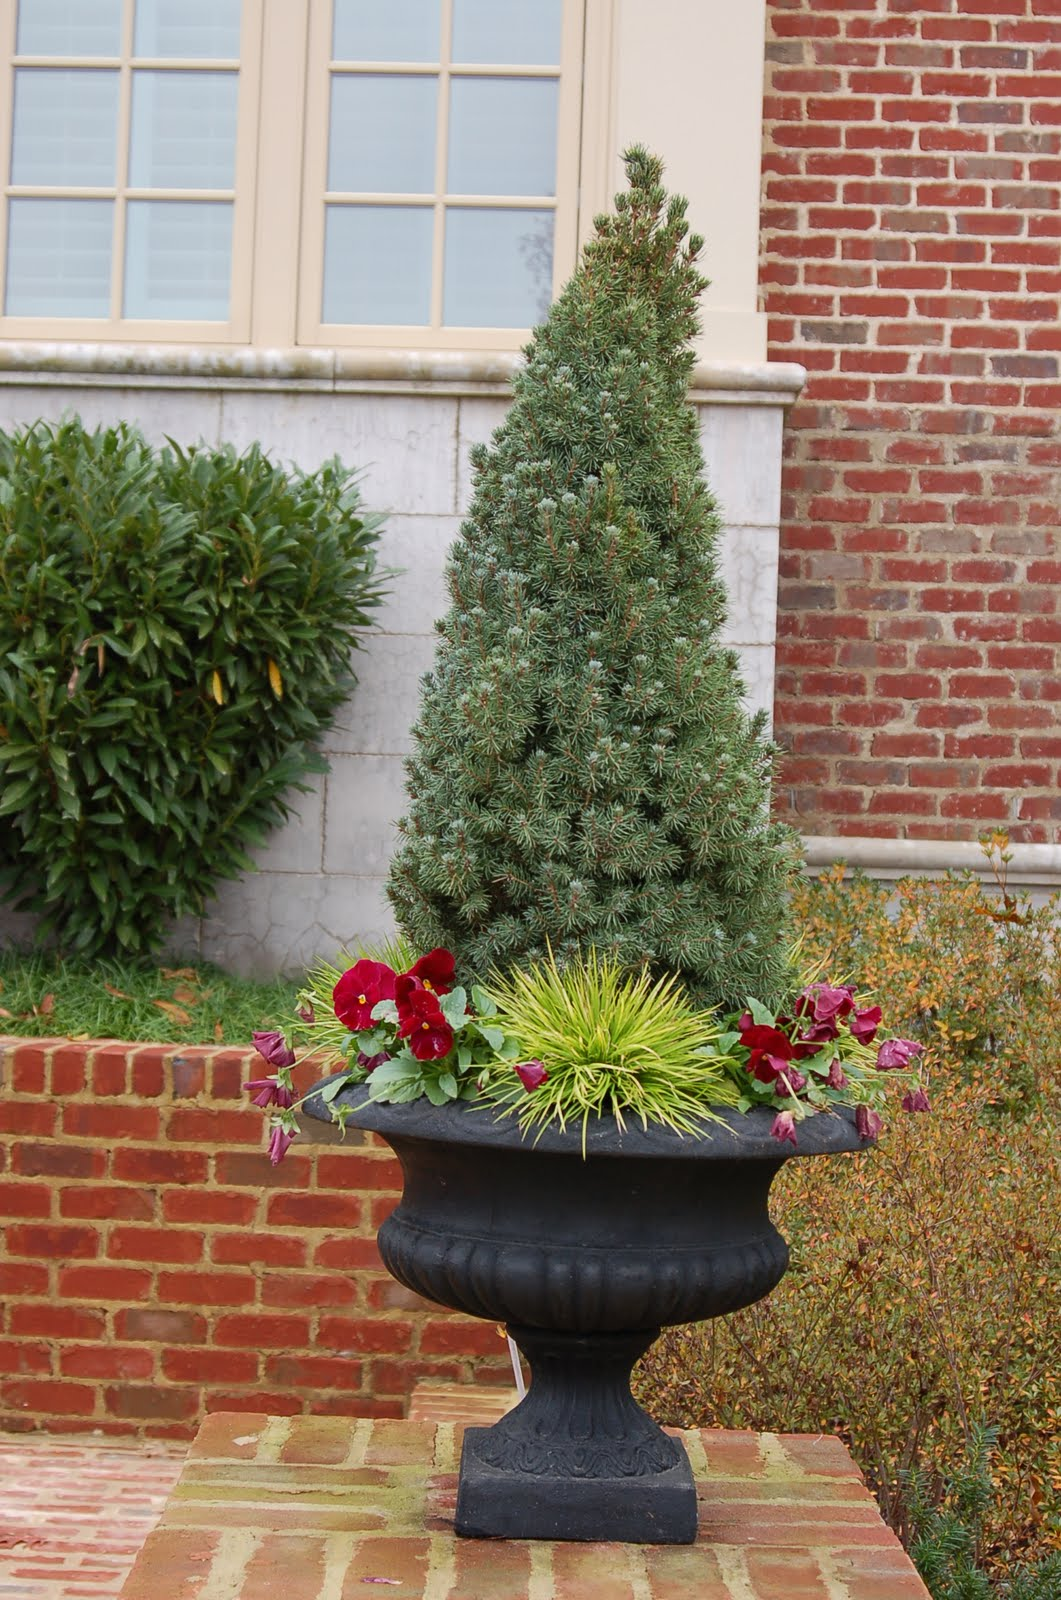 bwisegardening: Day 58 - Christmas Tree Containers